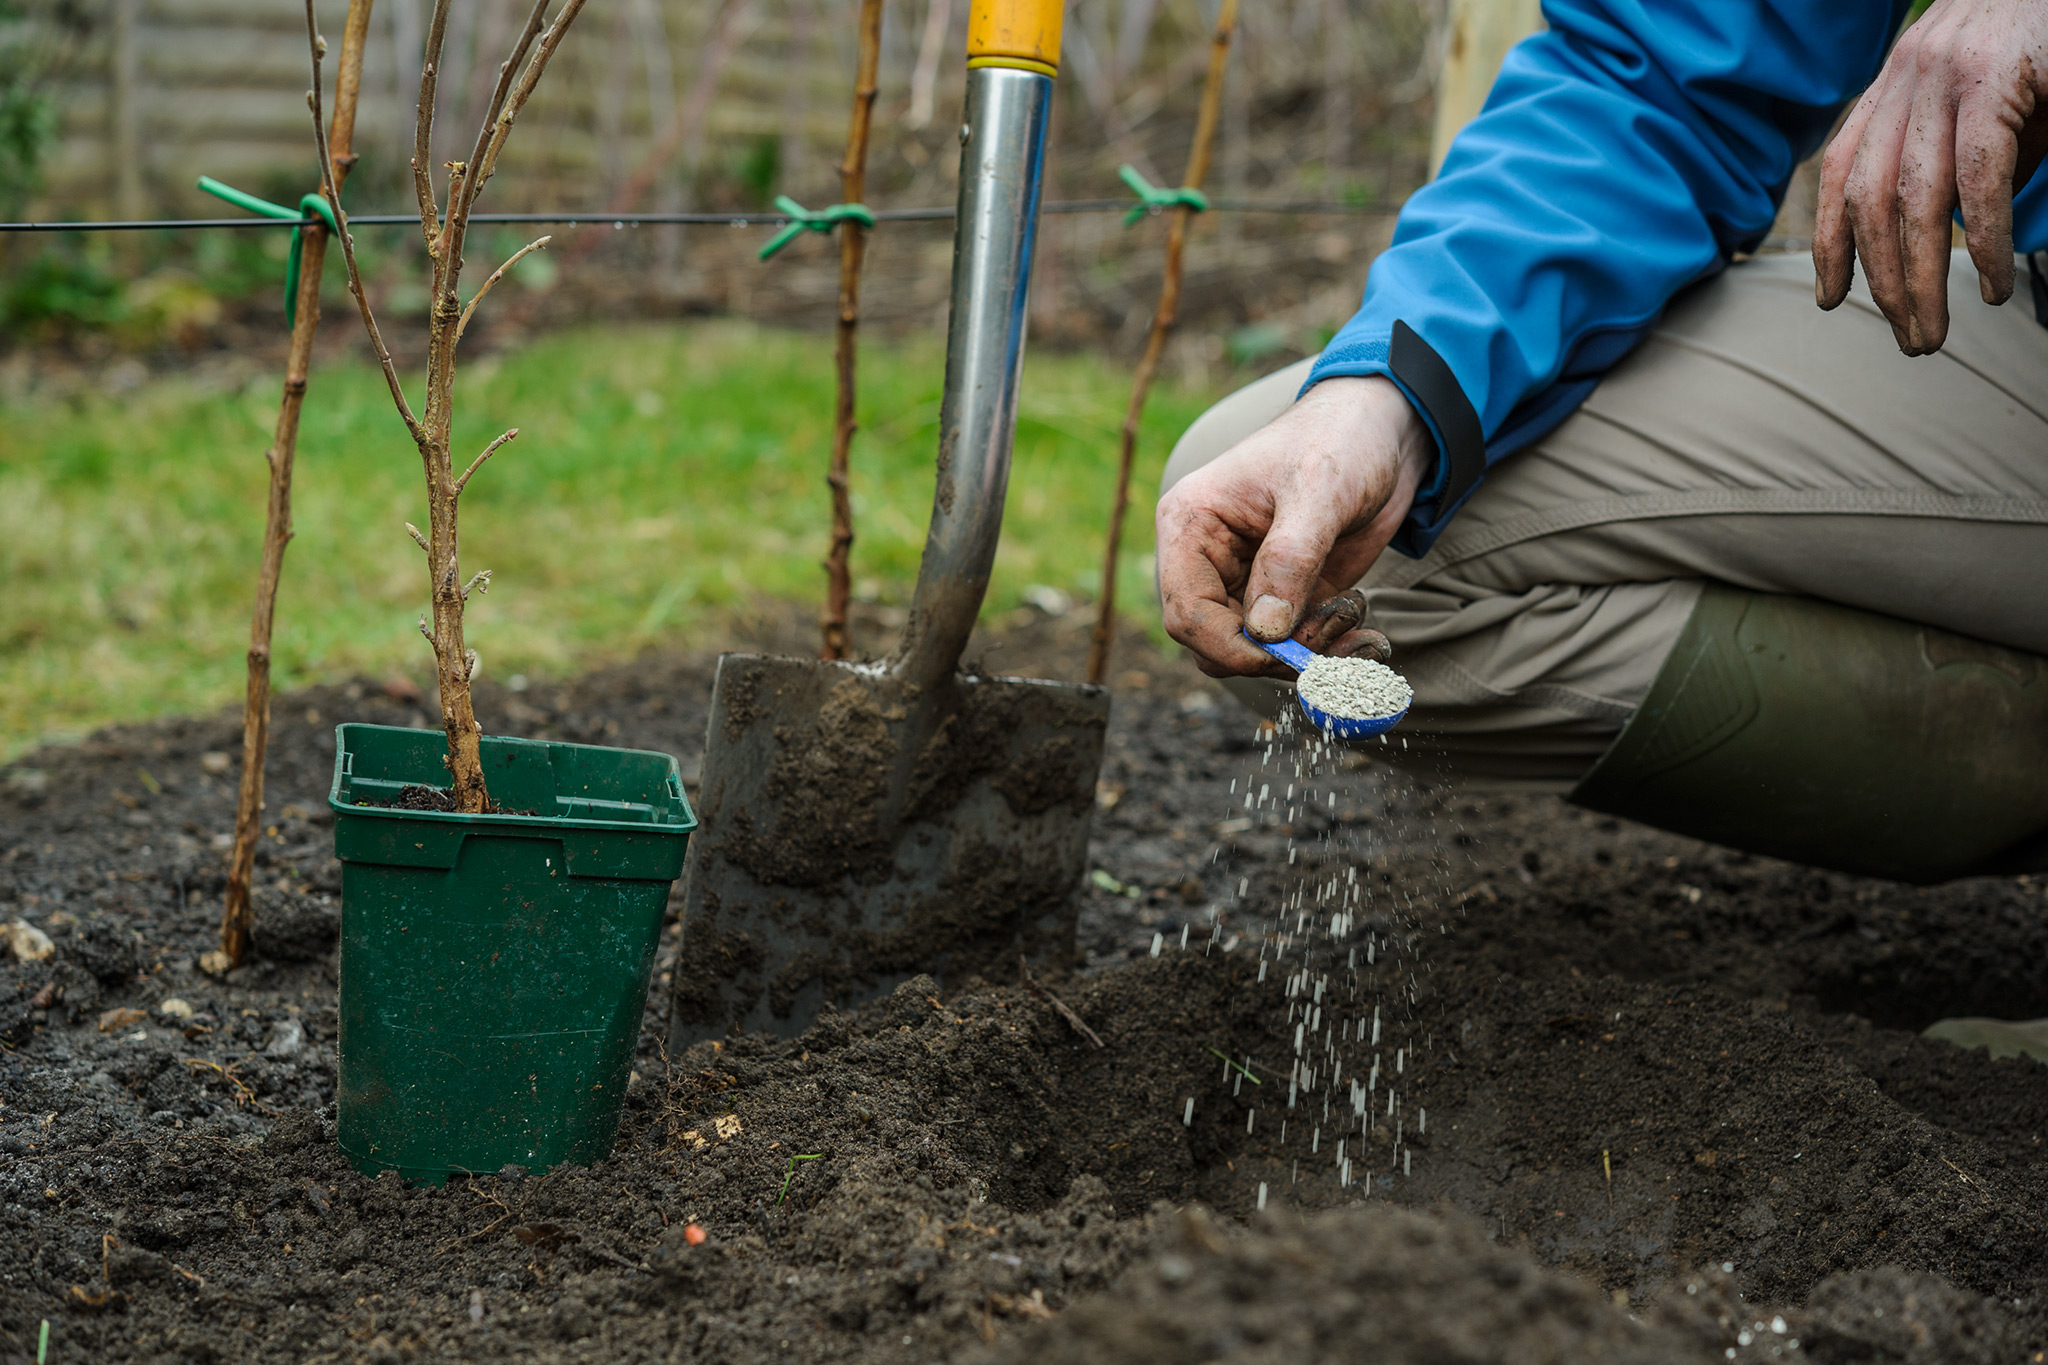 adding-fertiliser-to-the-planting-hole-for-currants-2